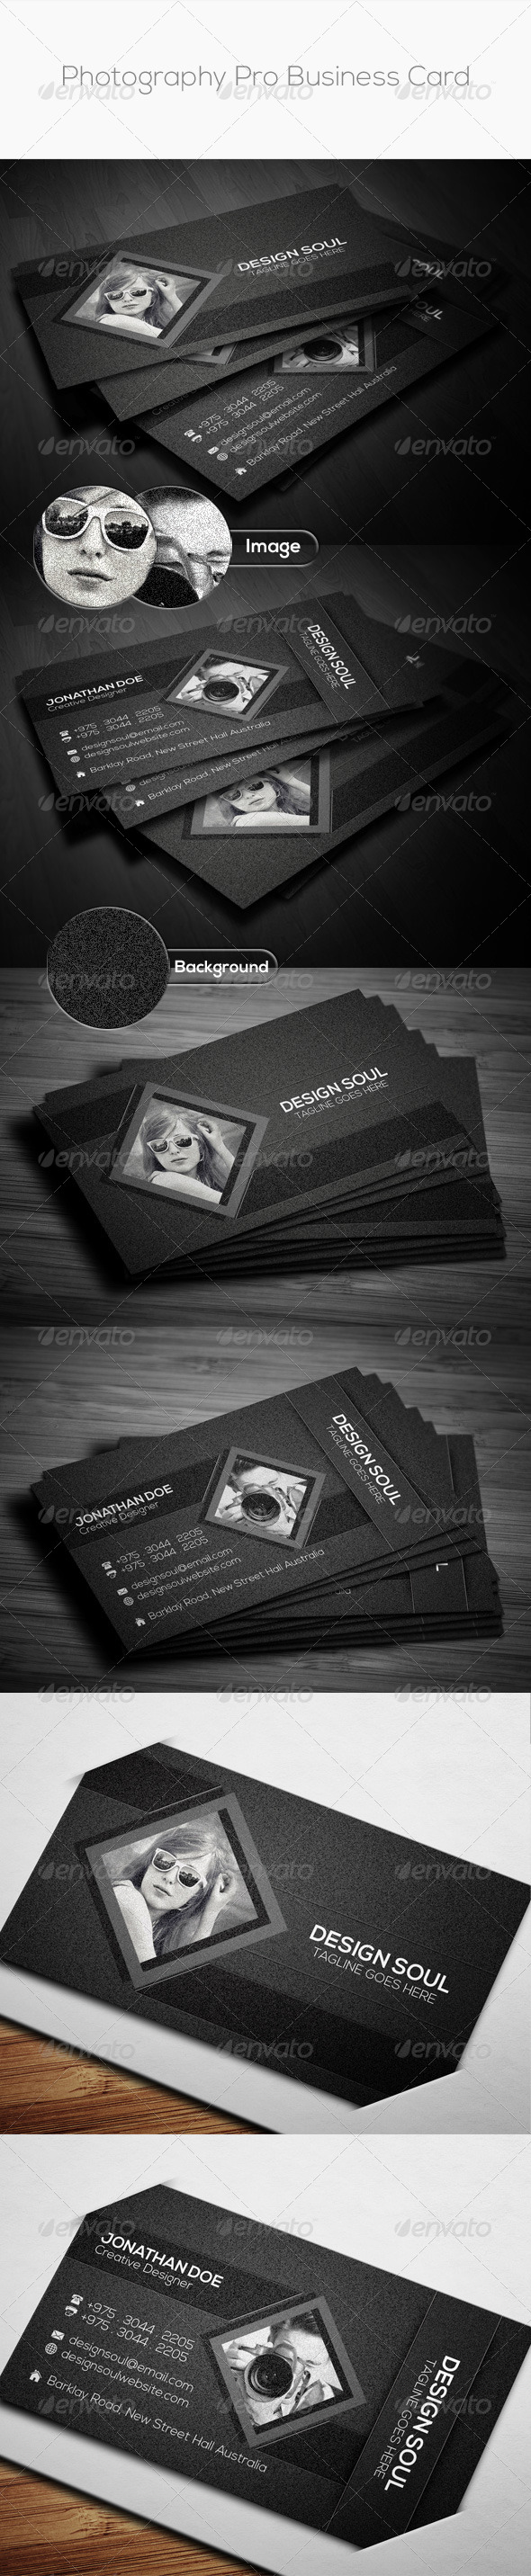 GraphicRiver Photography Pro Business Card 8761817